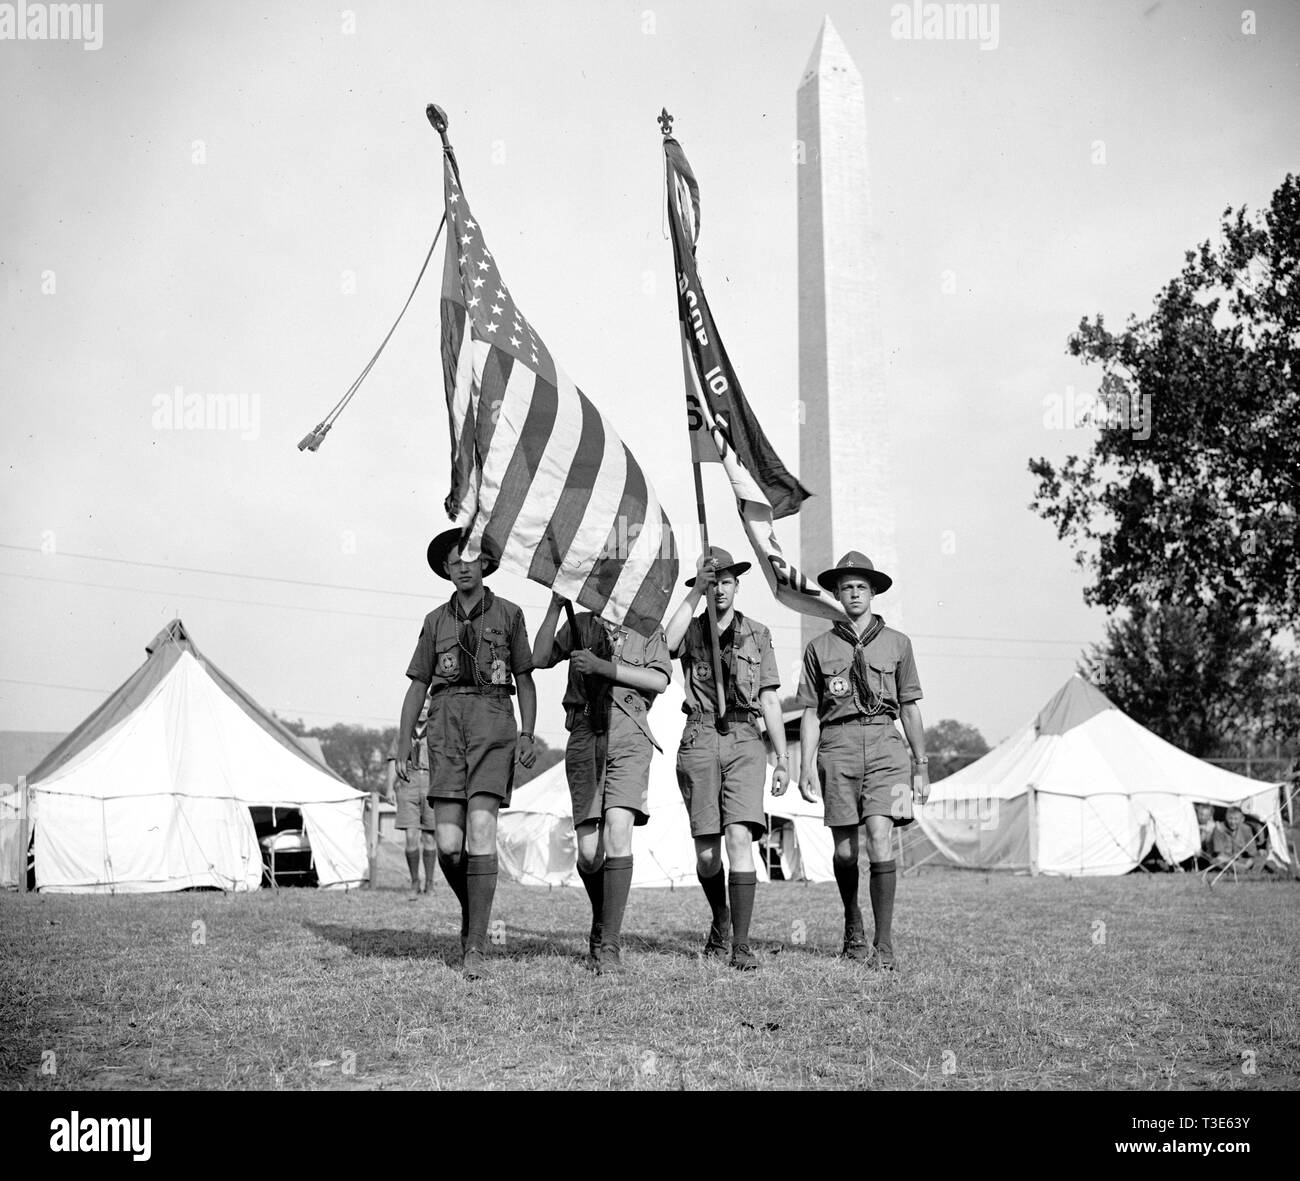 Boy Scouts Color Guard holding flags at the Boy Scout